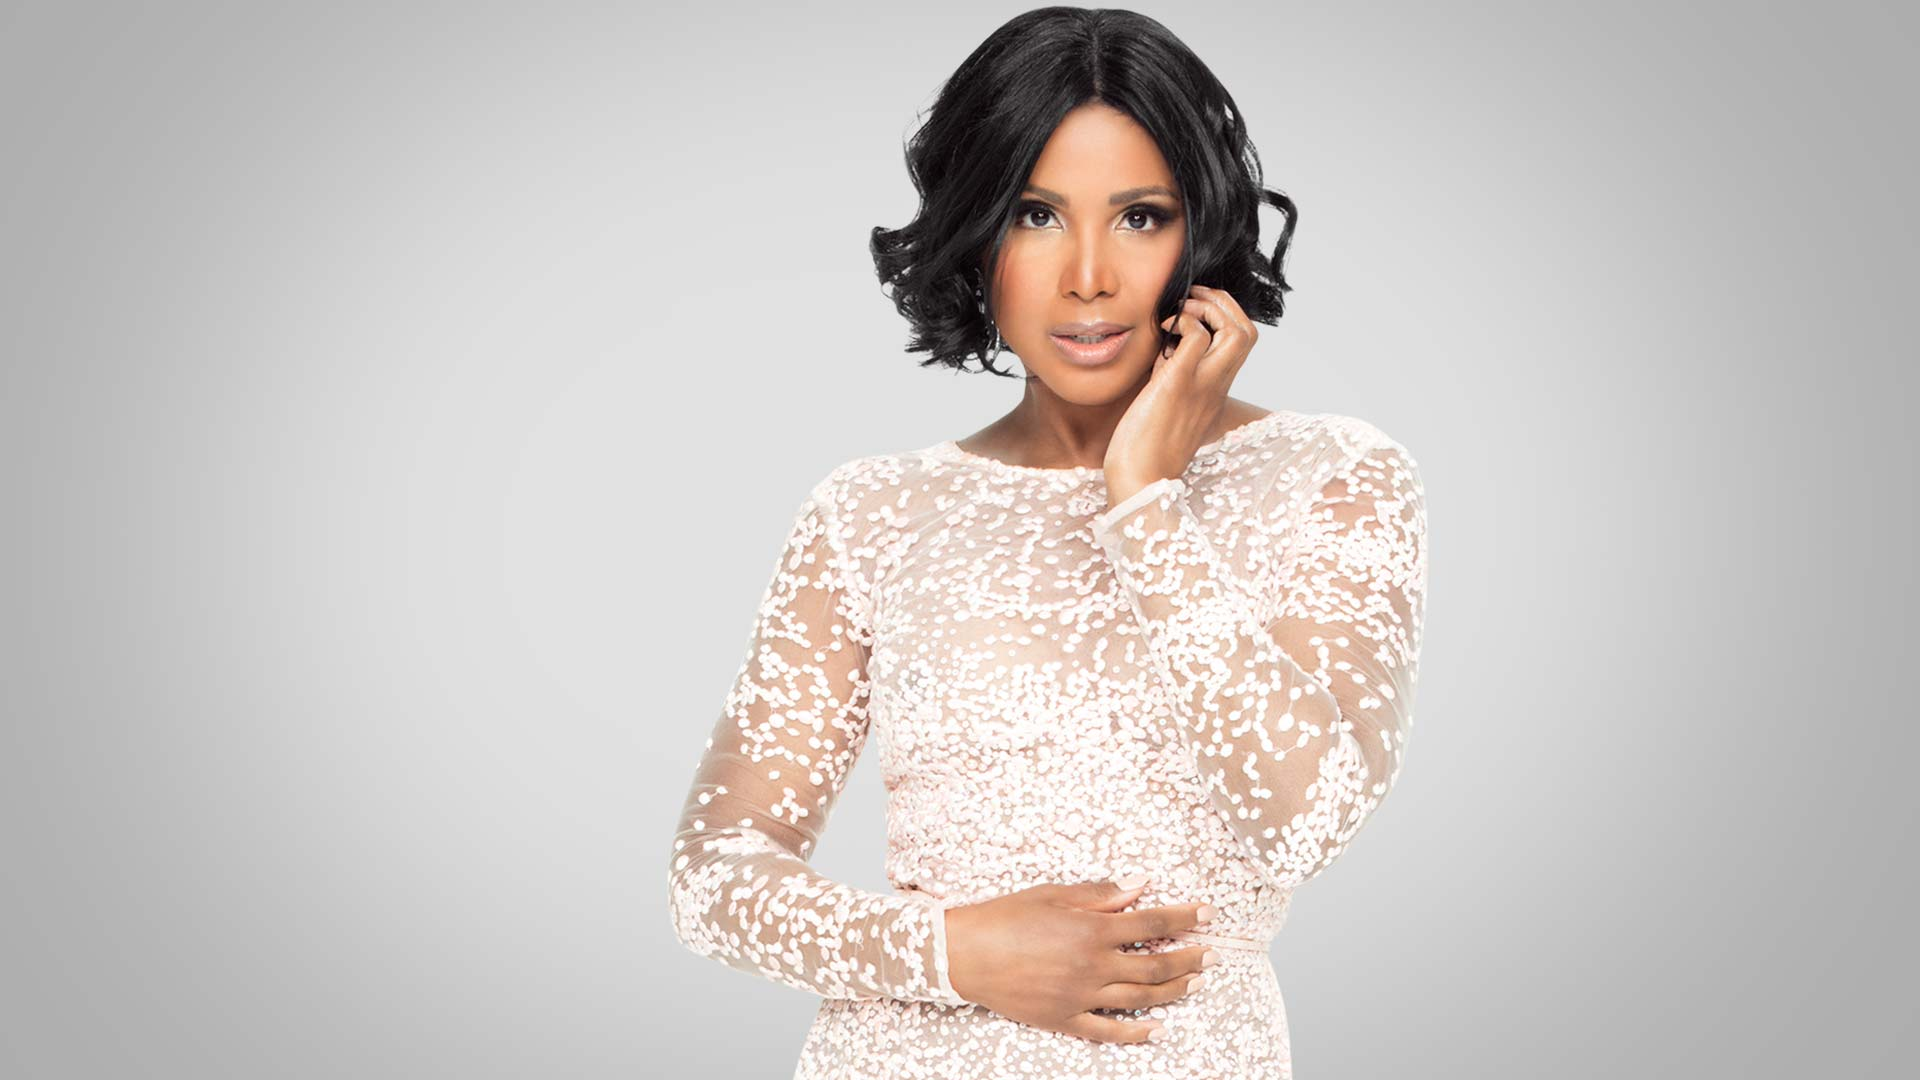 Toni Braxton SHows Off her Home For Christmas - The Video Is Featuring Her Two Boys And You Can Watch It Here